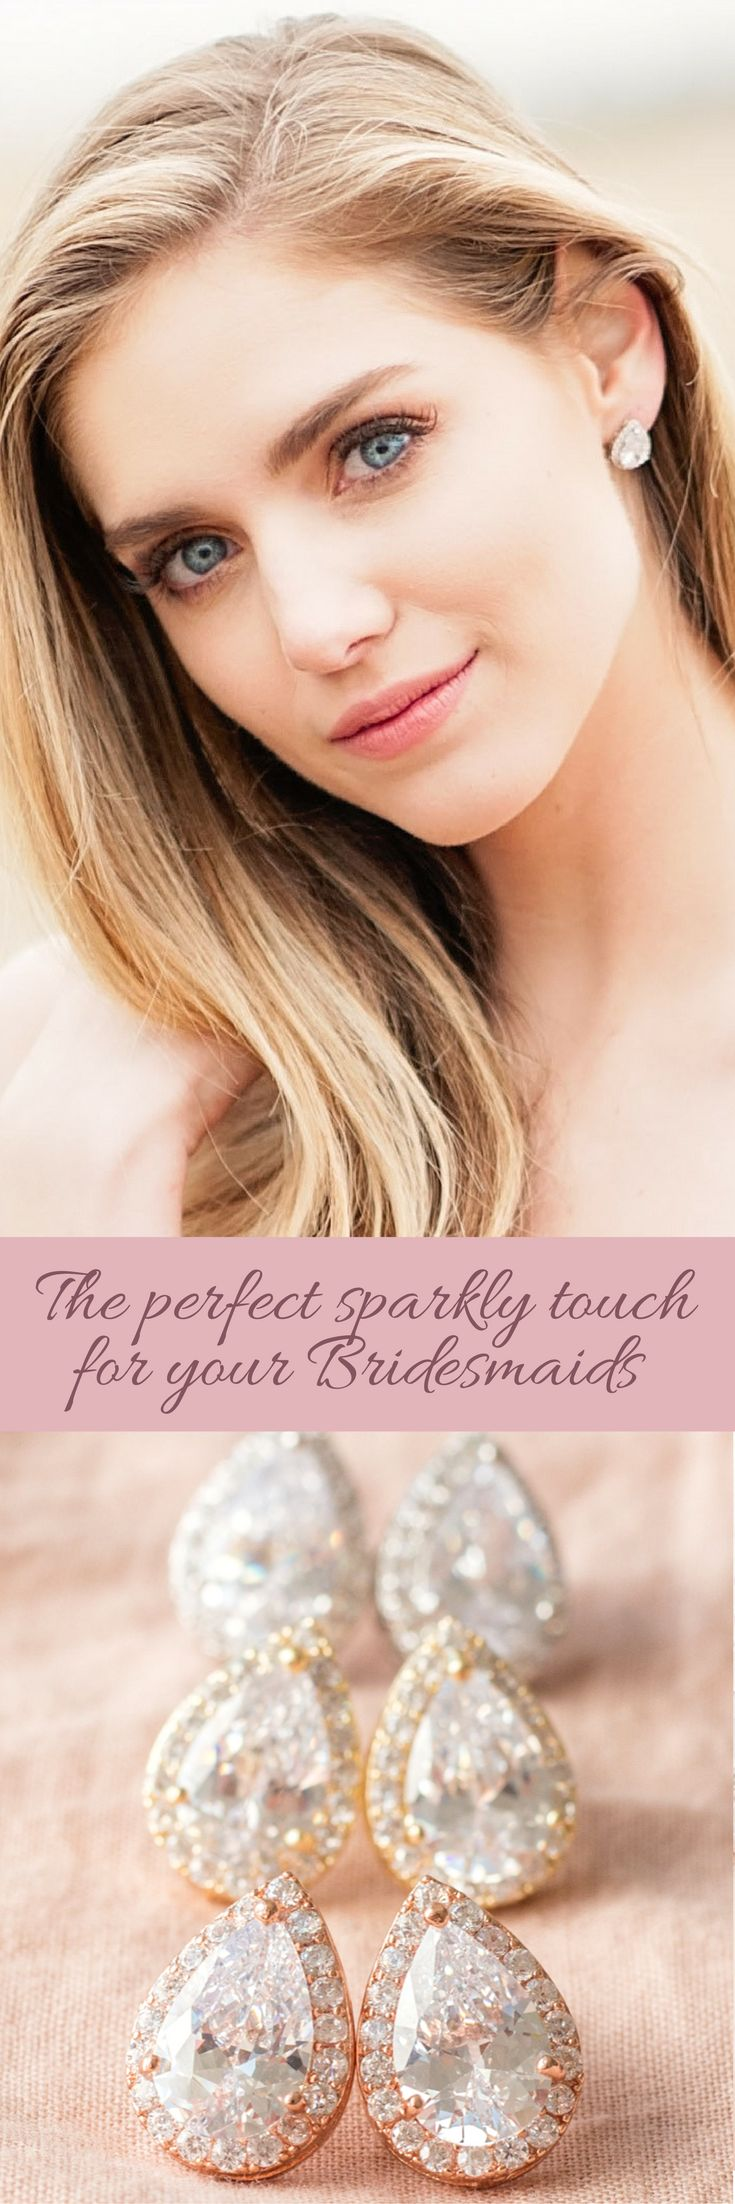 Give your bridesmaids a bit of sparkle on your special day (and a gift they'll love to wear over and over again)!